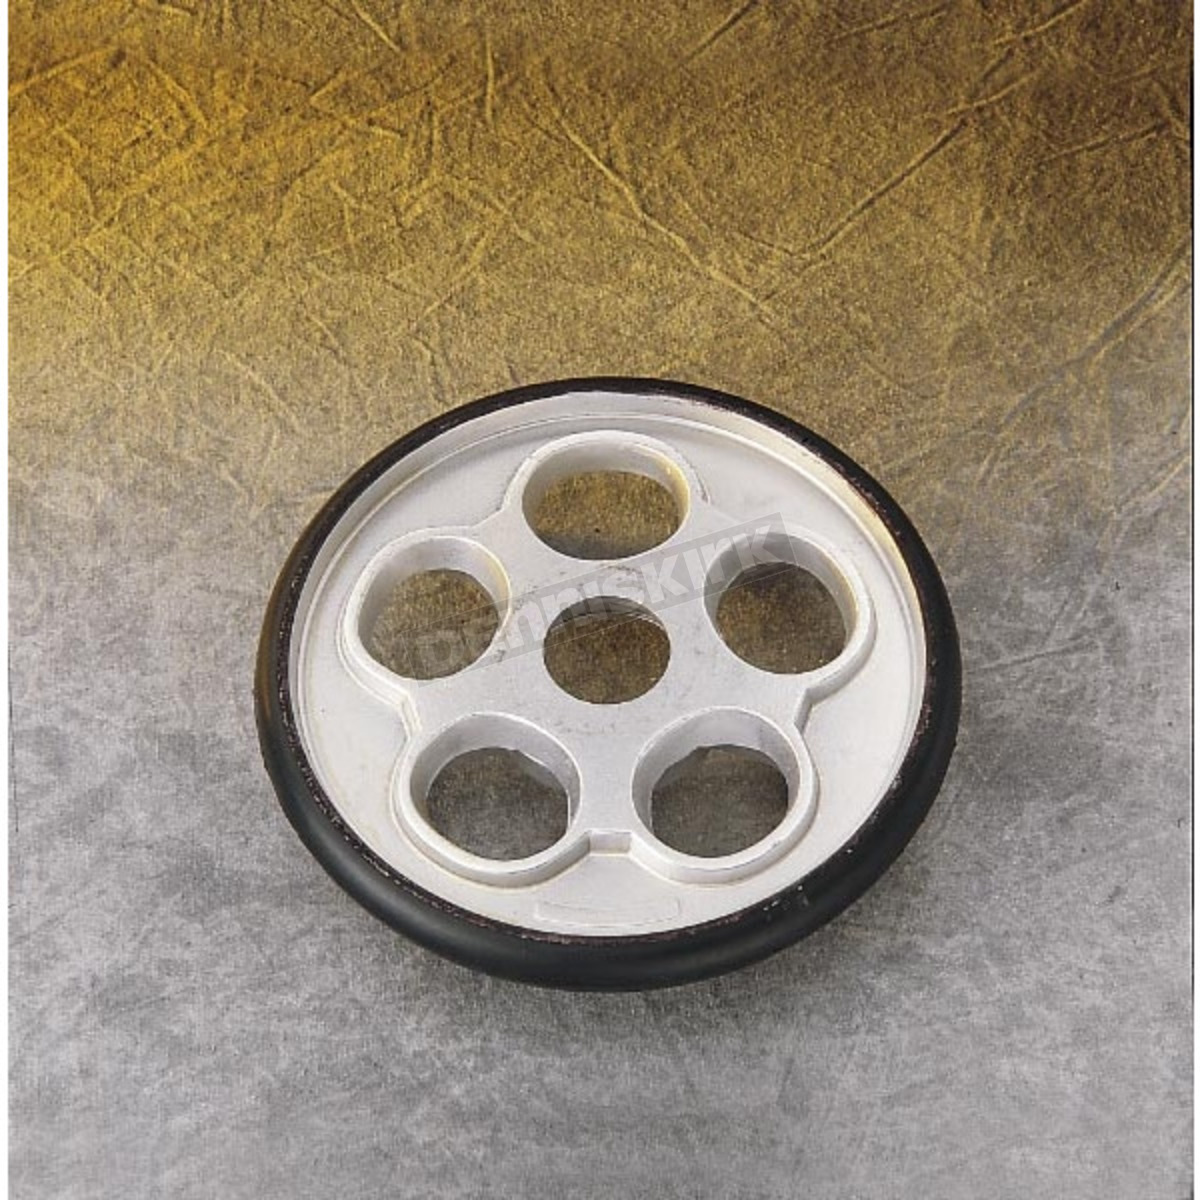 Parts Unlimited Silver Idler Wheel W O Bearing